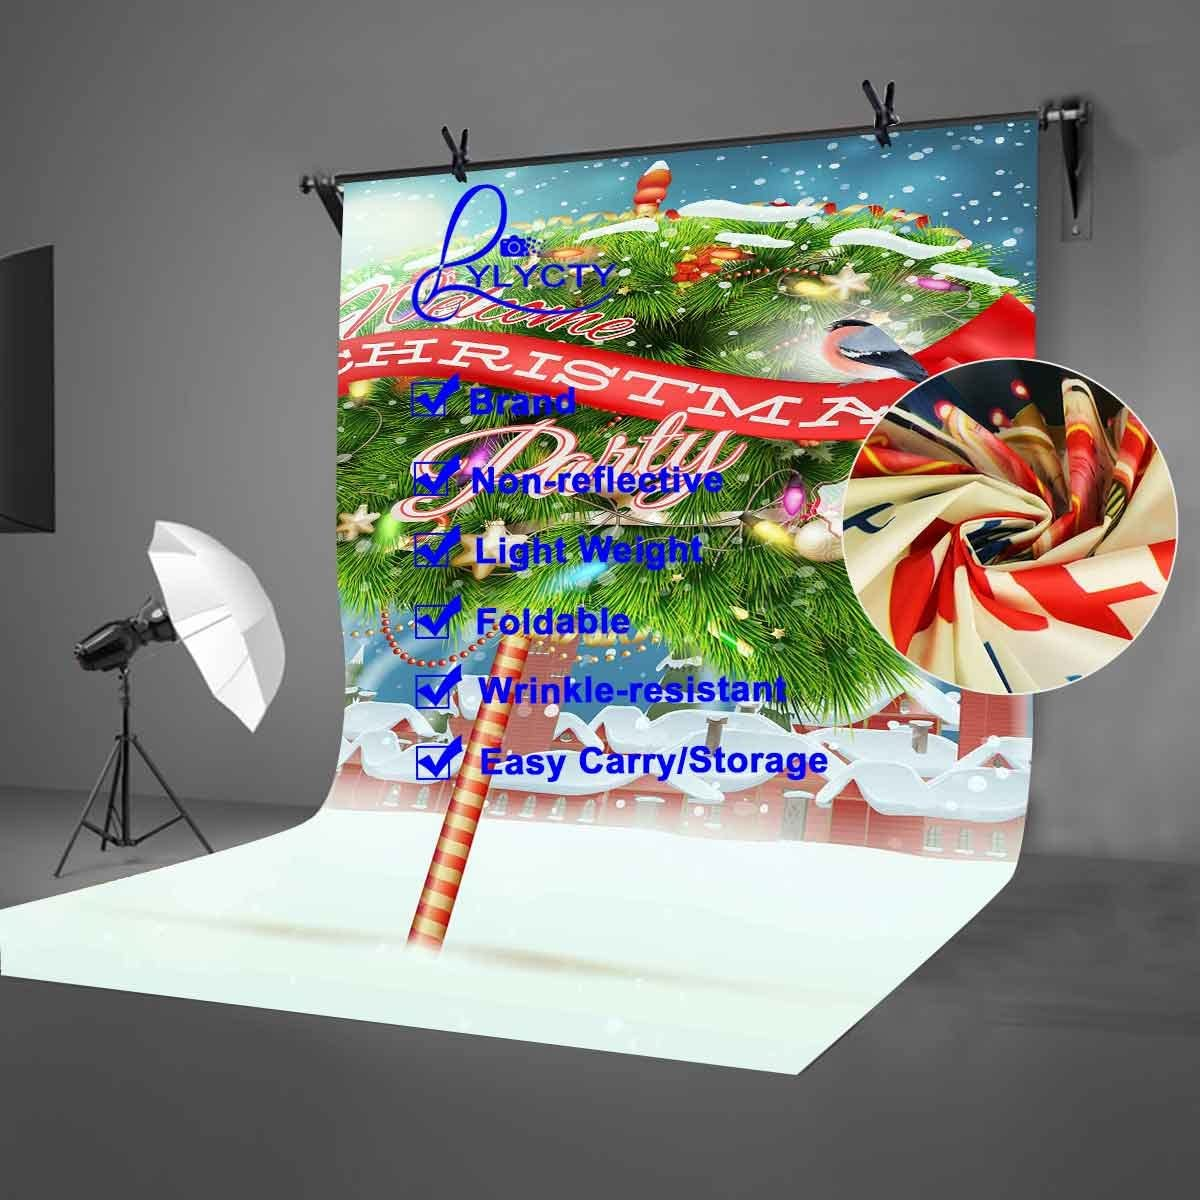 LYLYCTY 5x7ft Merry Christmas Backdrop Christmas Tree Christmas Happy Party Photography Backdrop Photo Studio Background Props LYNAN415